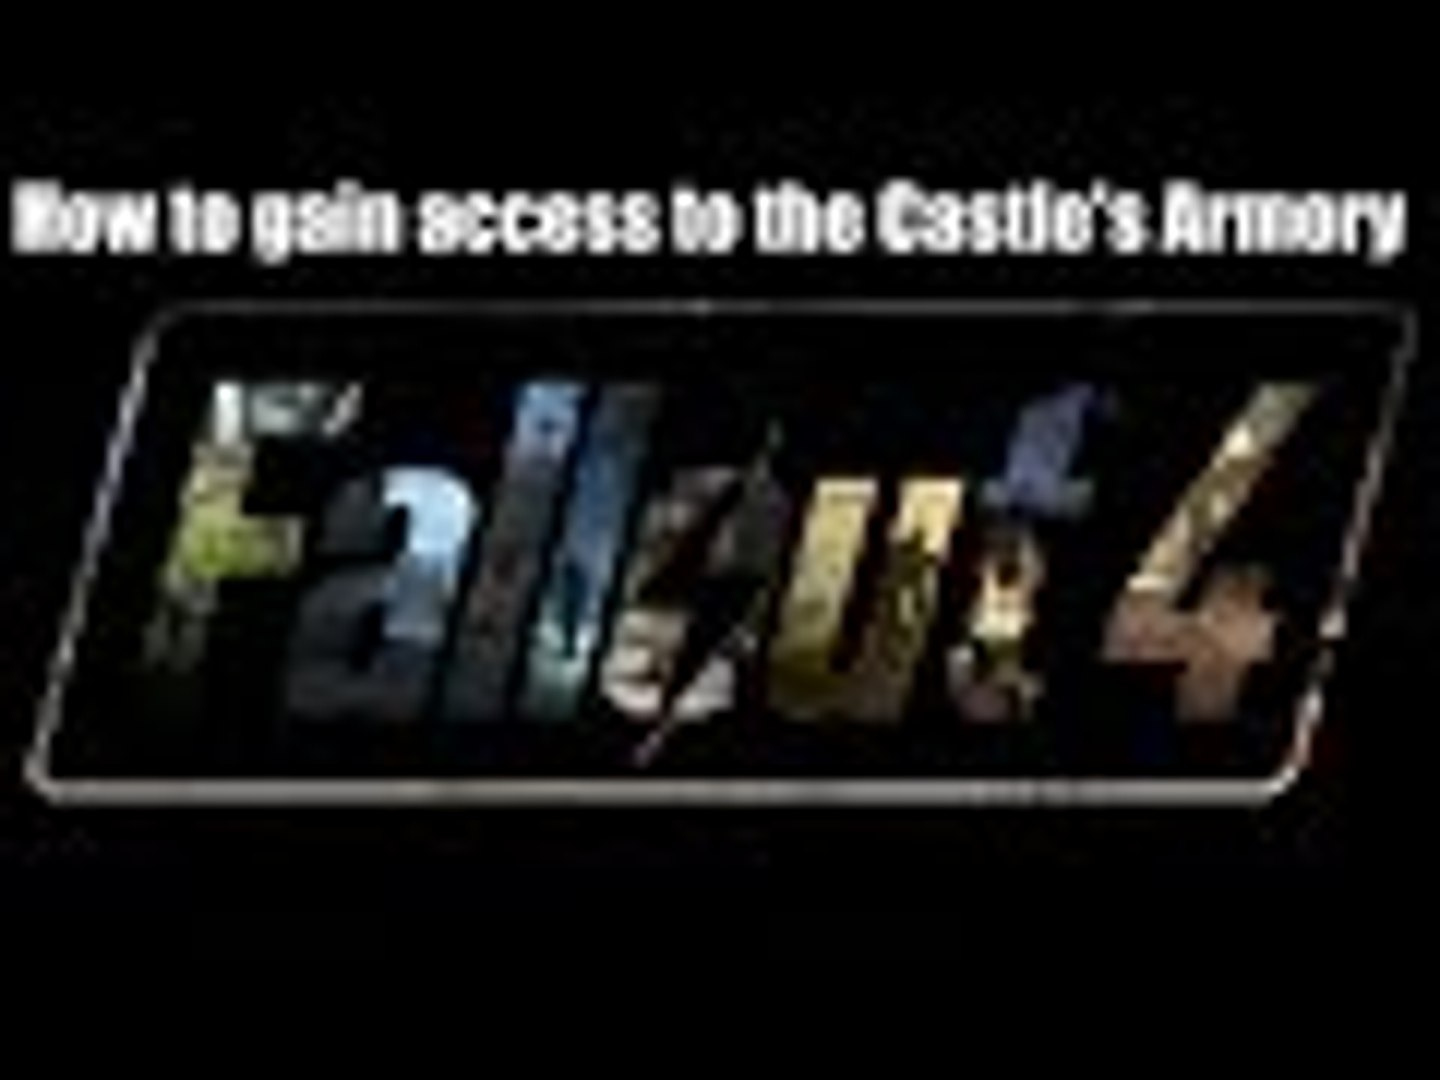 Fallout 4: how to gain access to the castle's armory